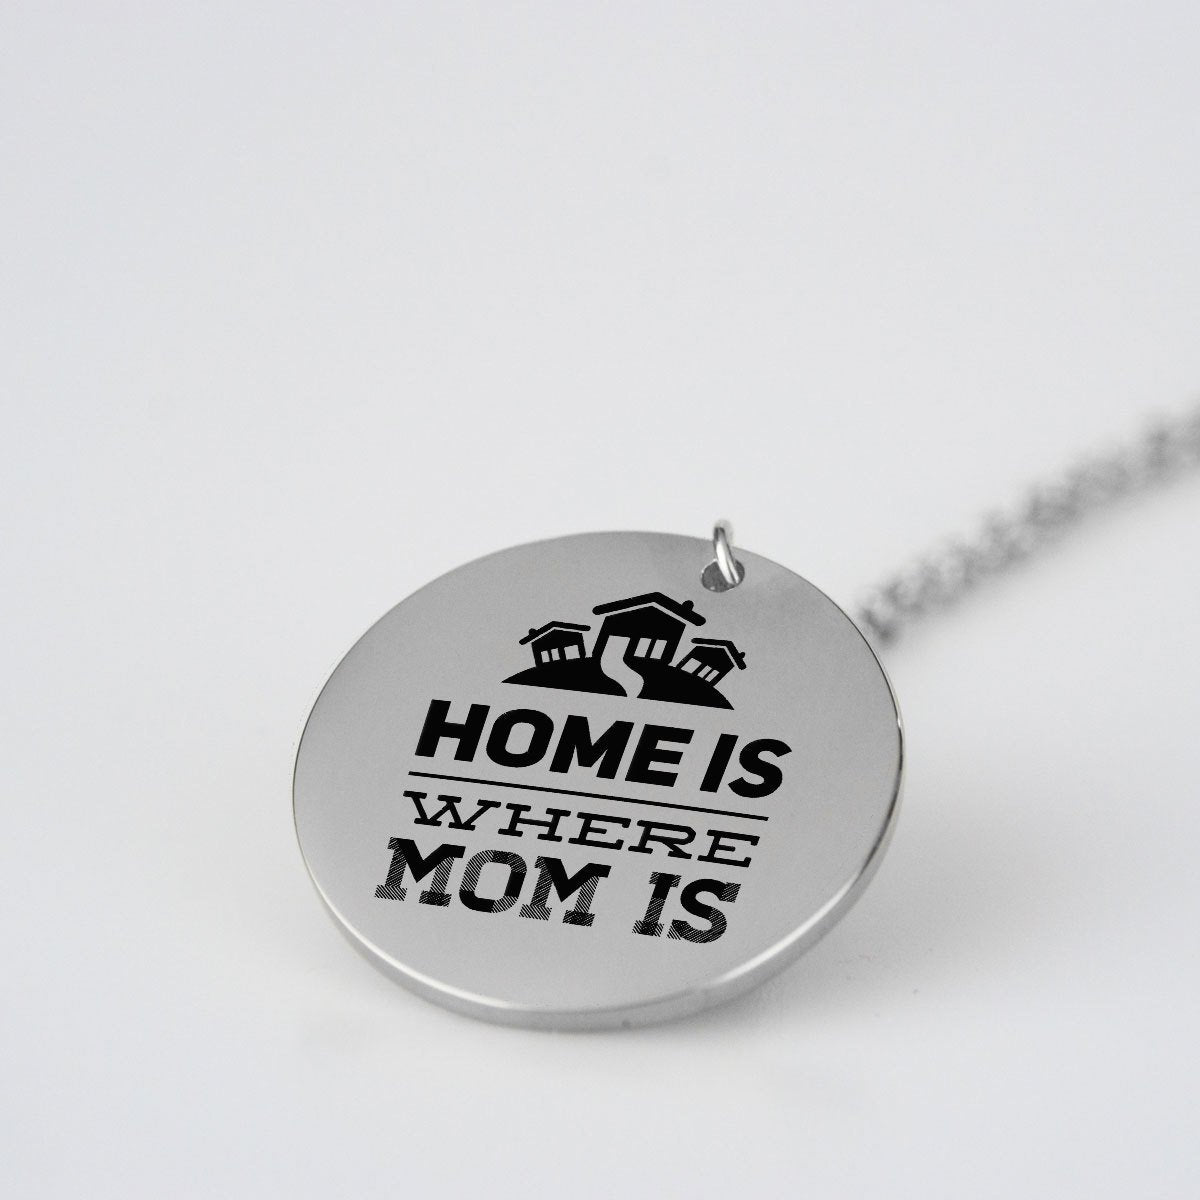 Home is where Mom is - Maraya's Marketplace